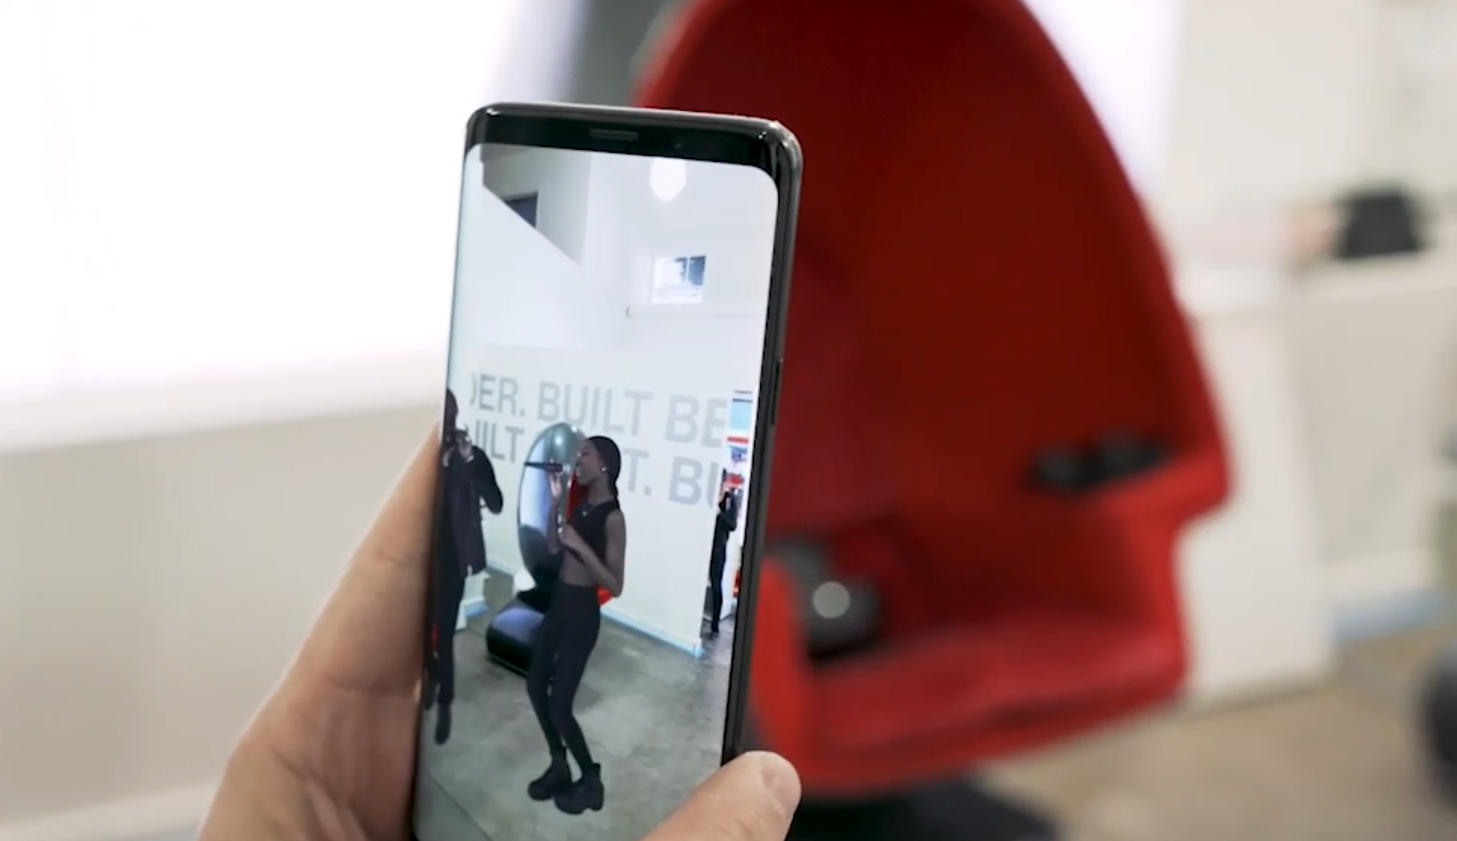 This AR prototype explored shoppable moments and opportunities for e-commerce.